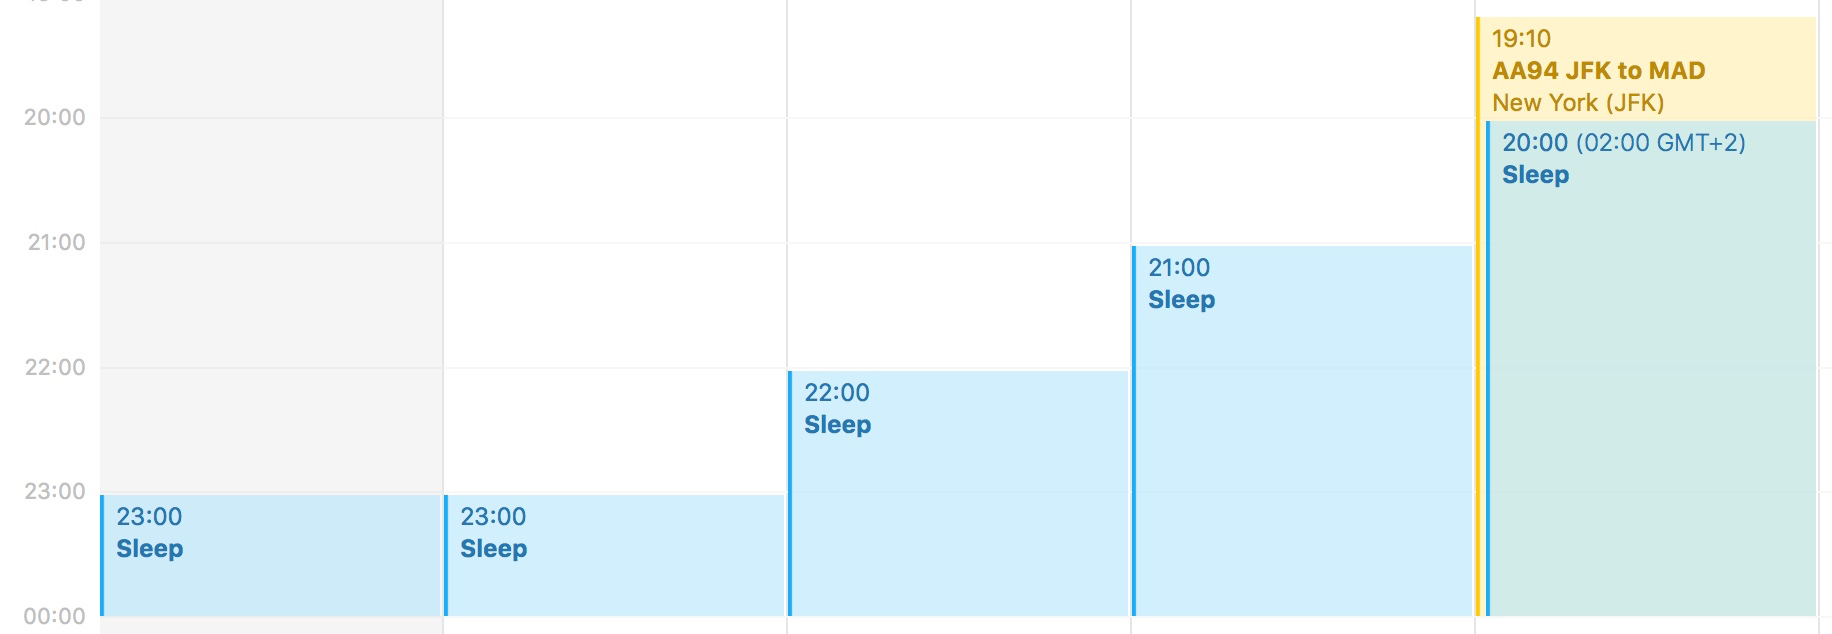 TRAVEL_Eastern Time Sleep Calendar.jpg